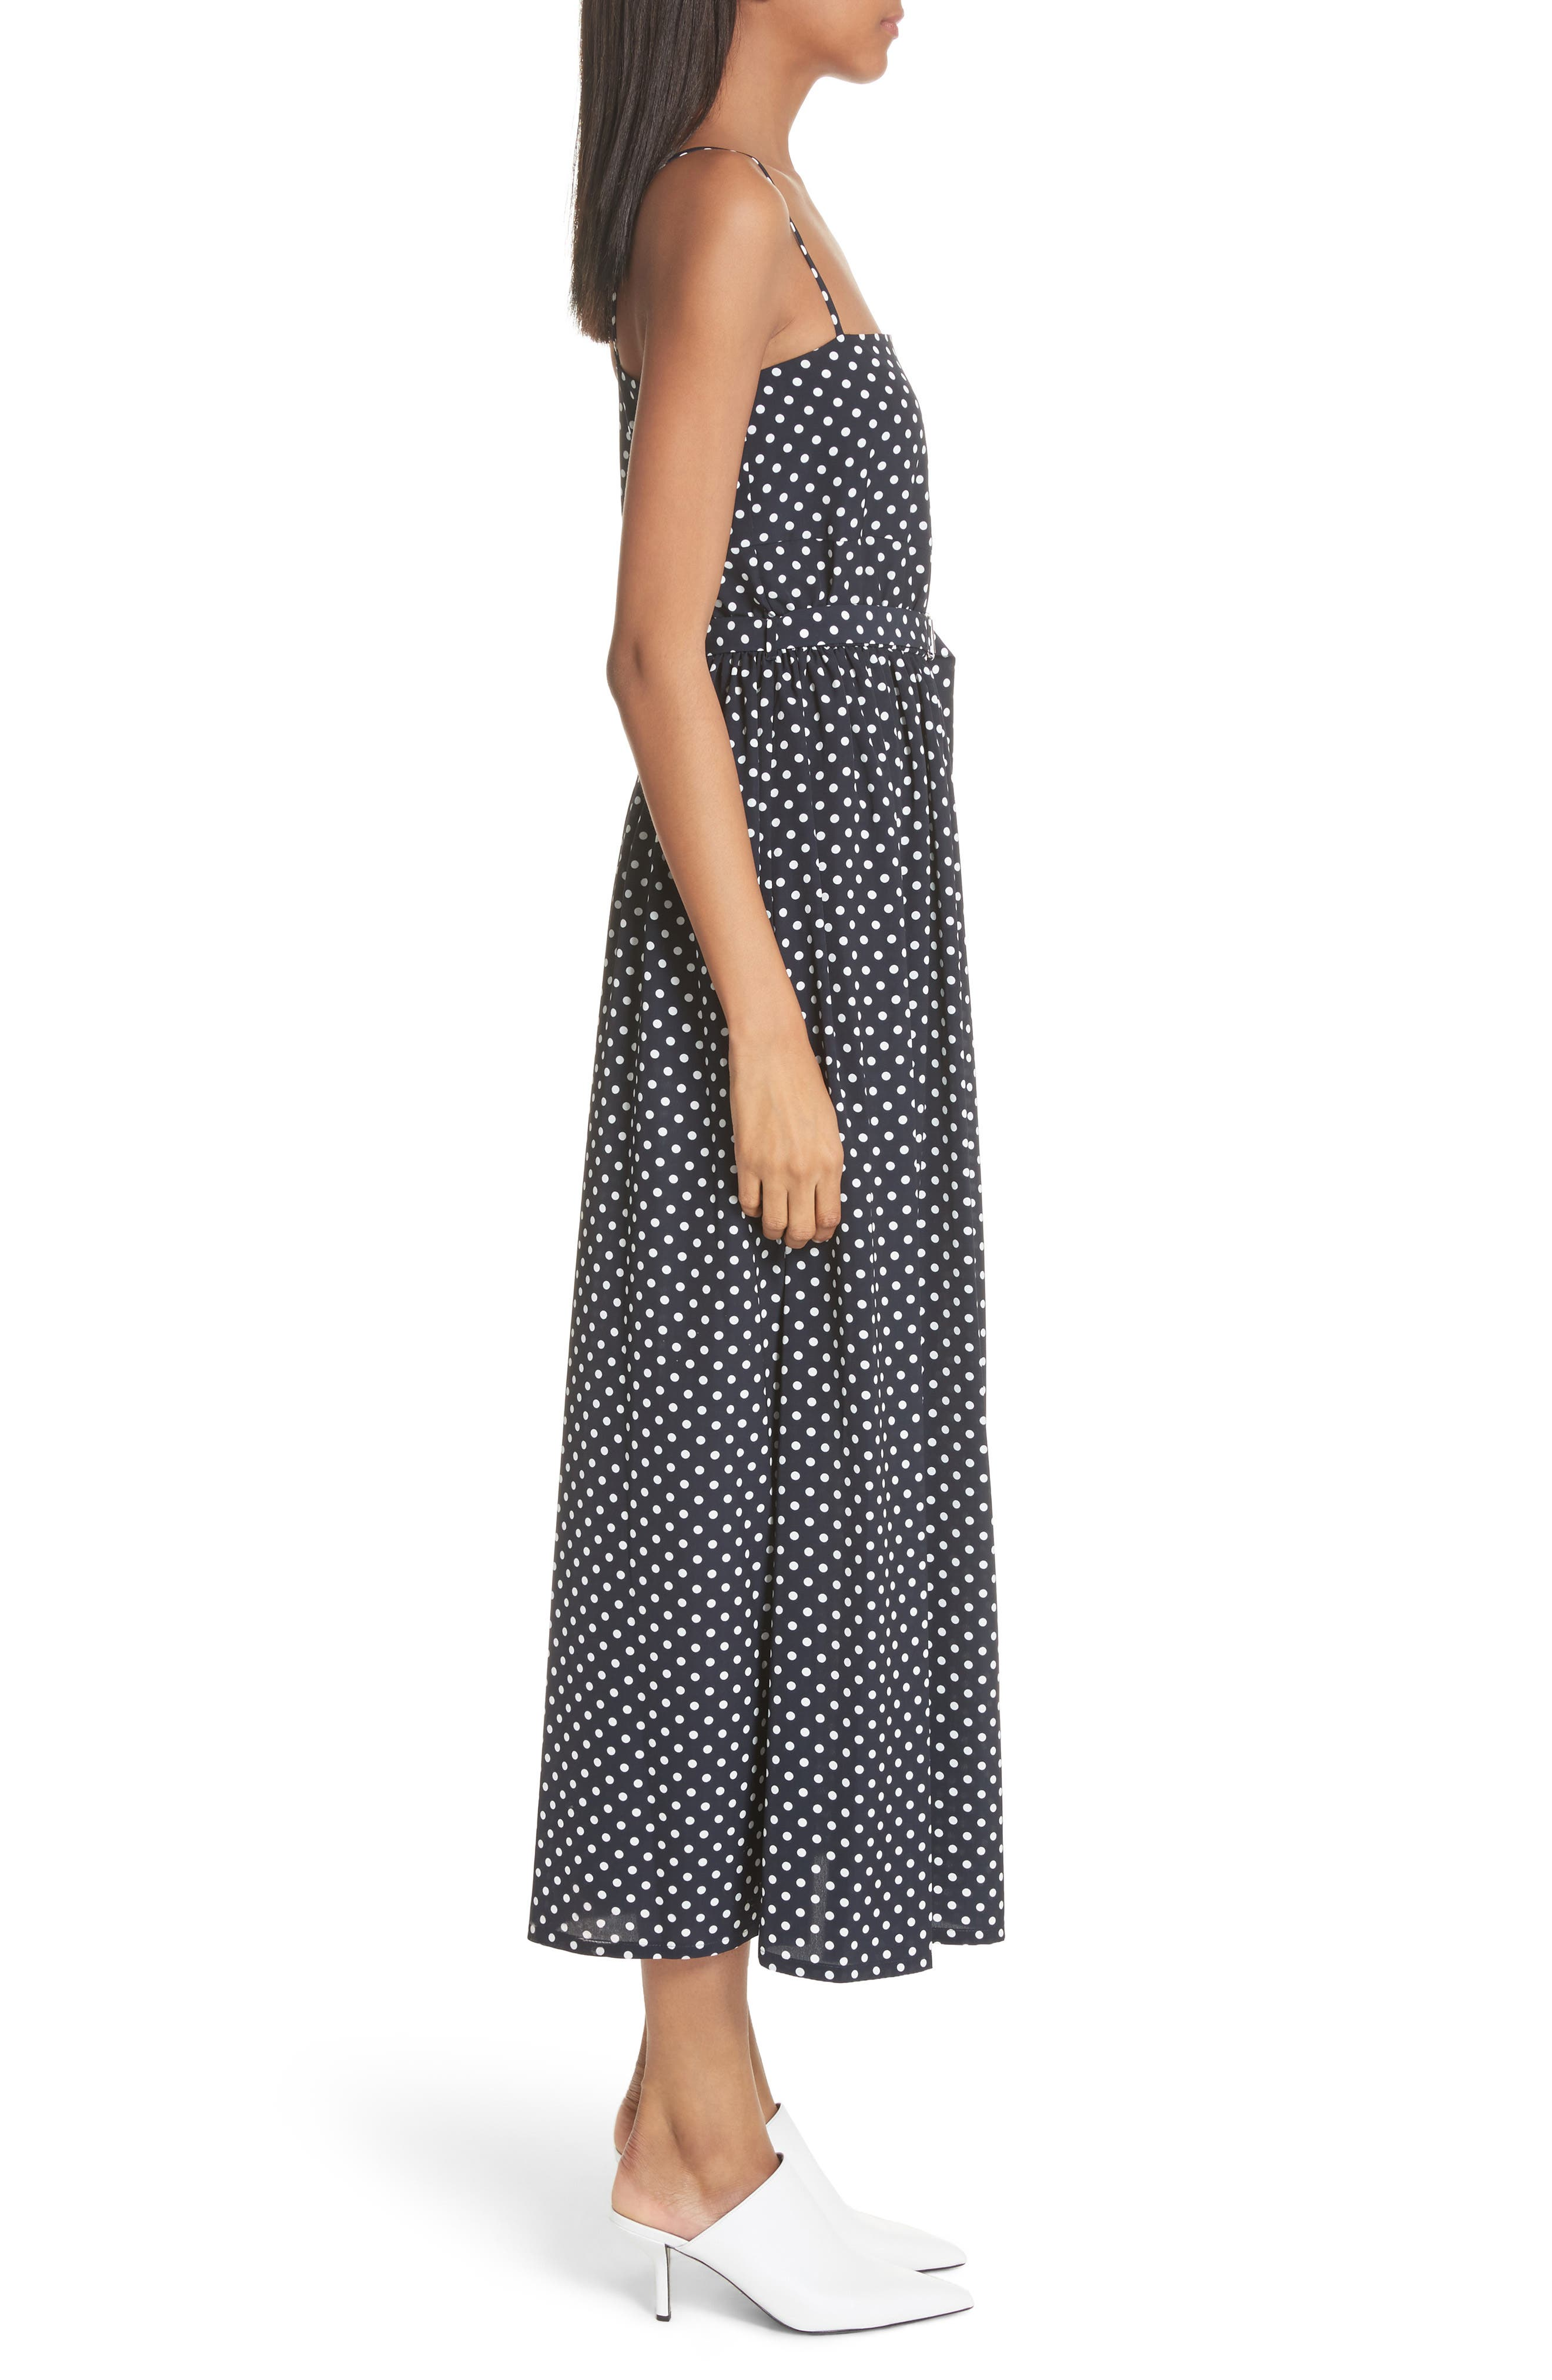 Polka Dot Midi Dress,                             Alternate thumbnail 3, color,                             410